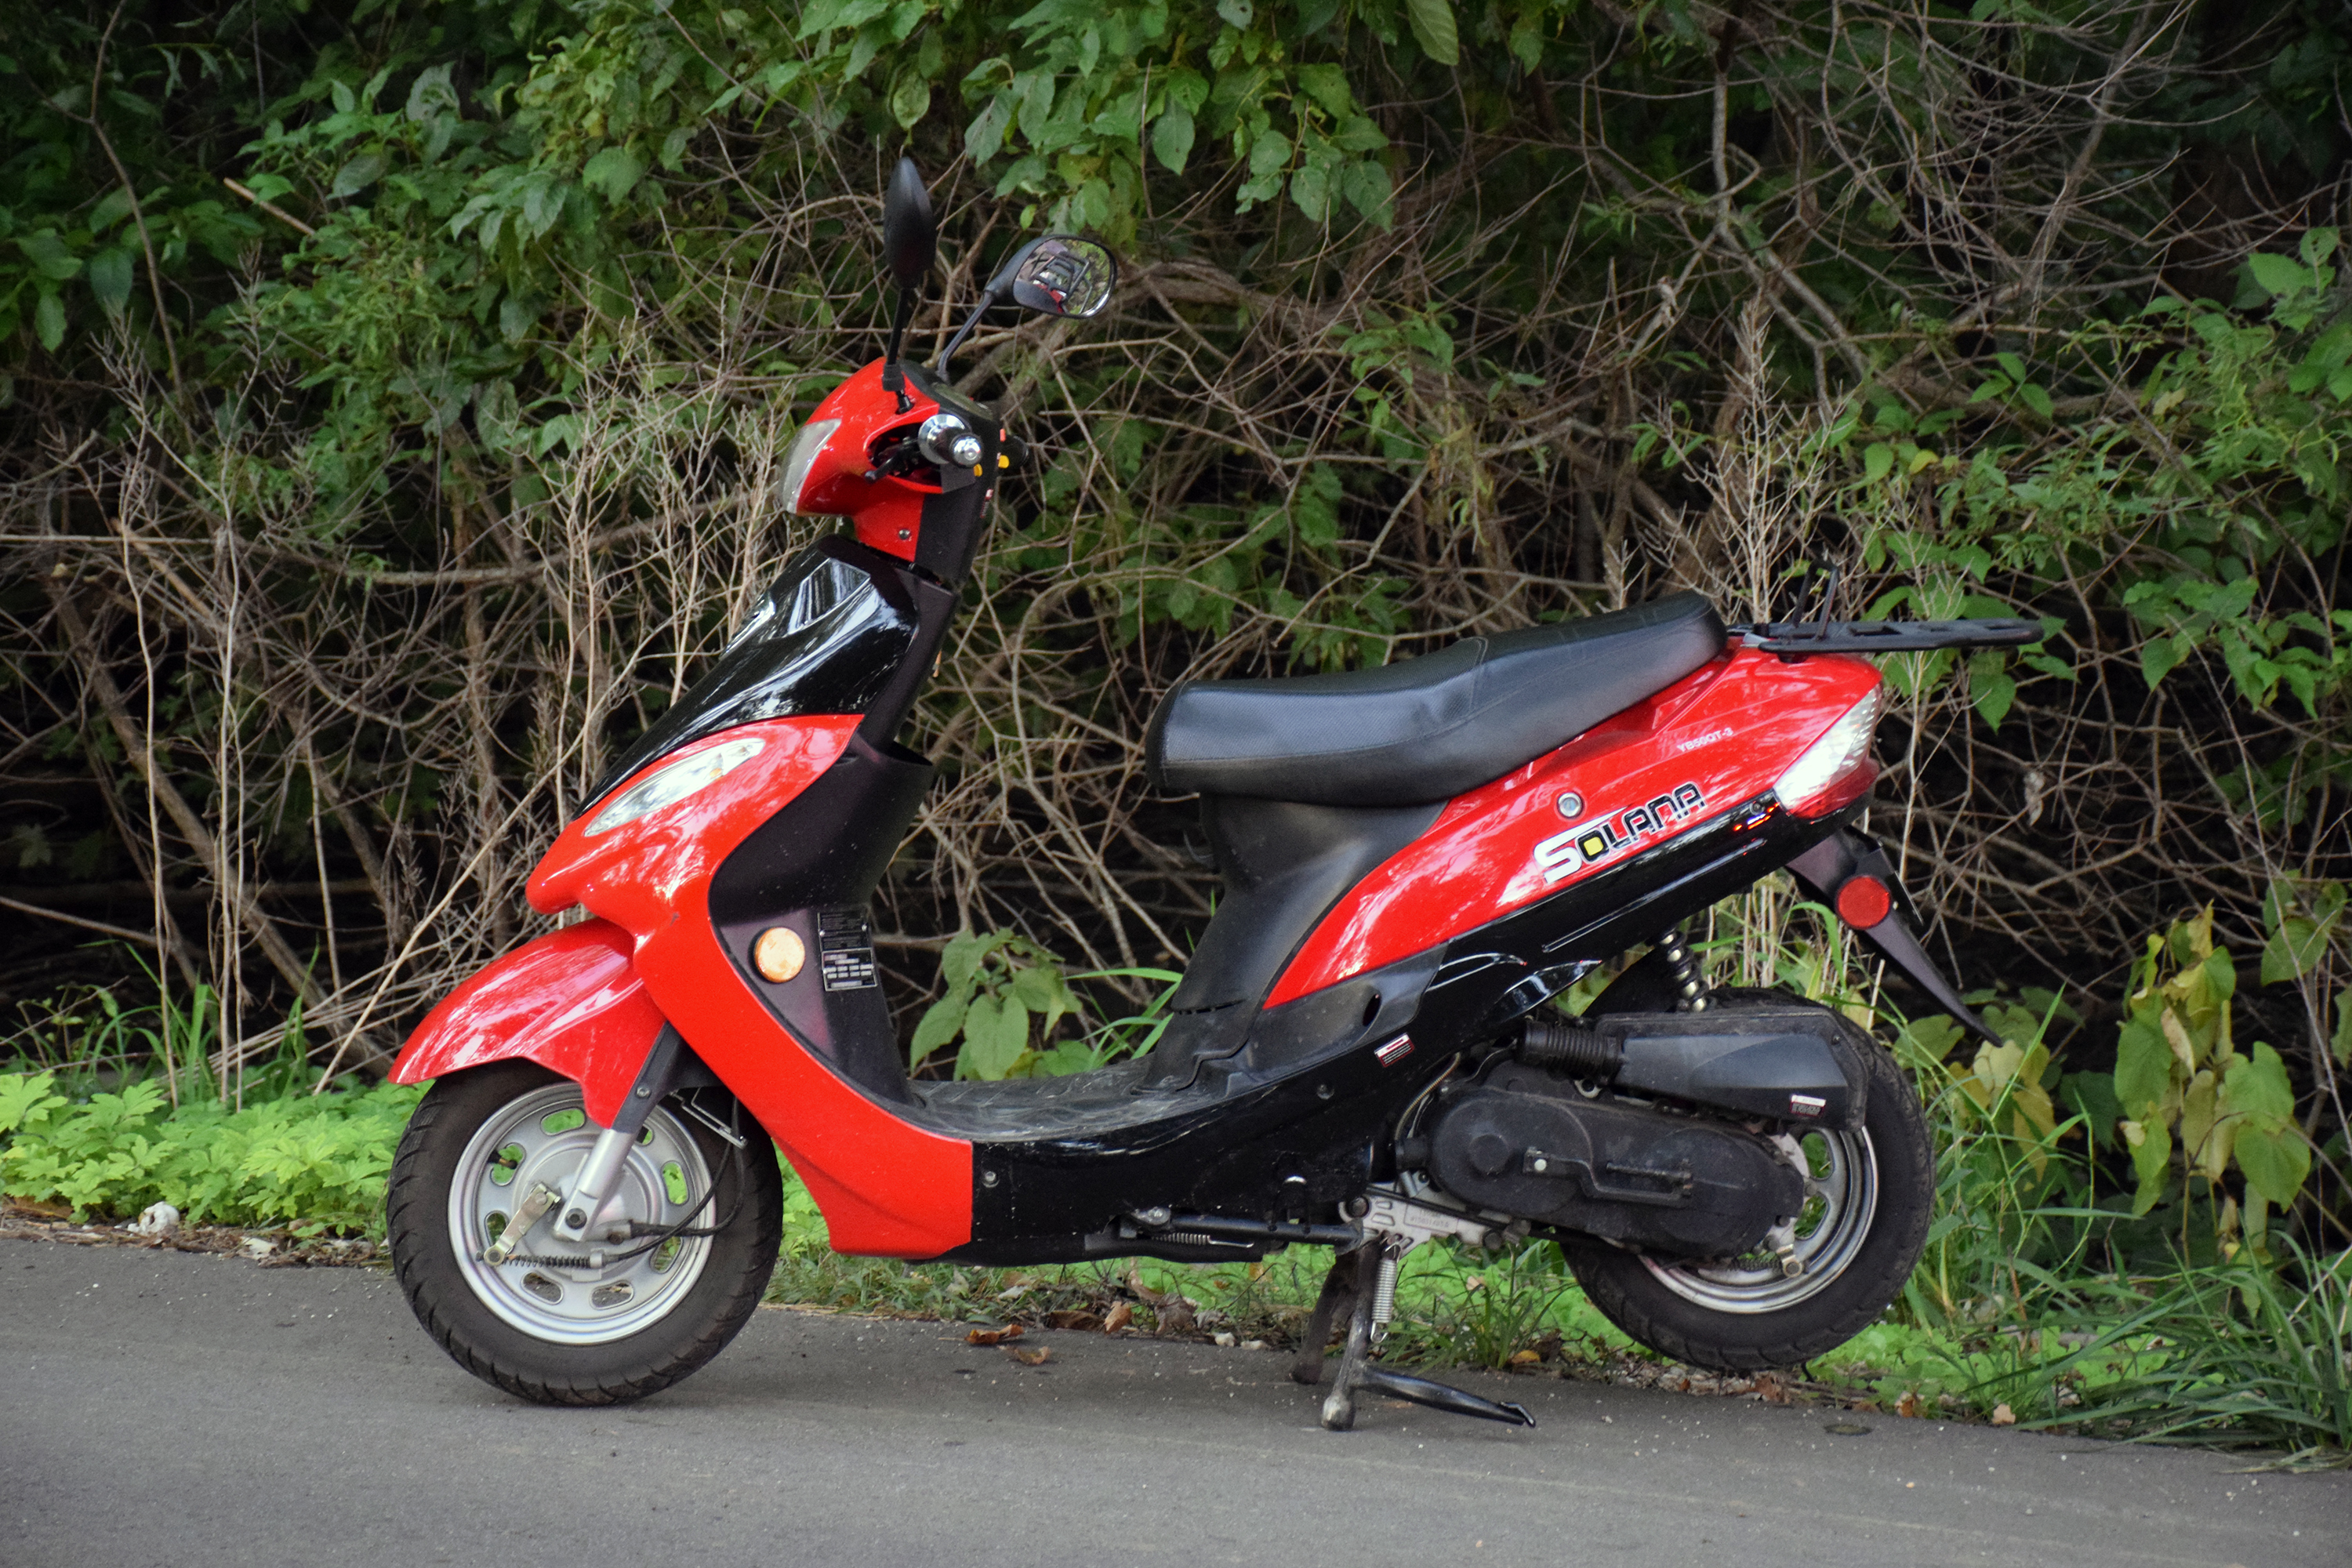 The moped involved in the accident.